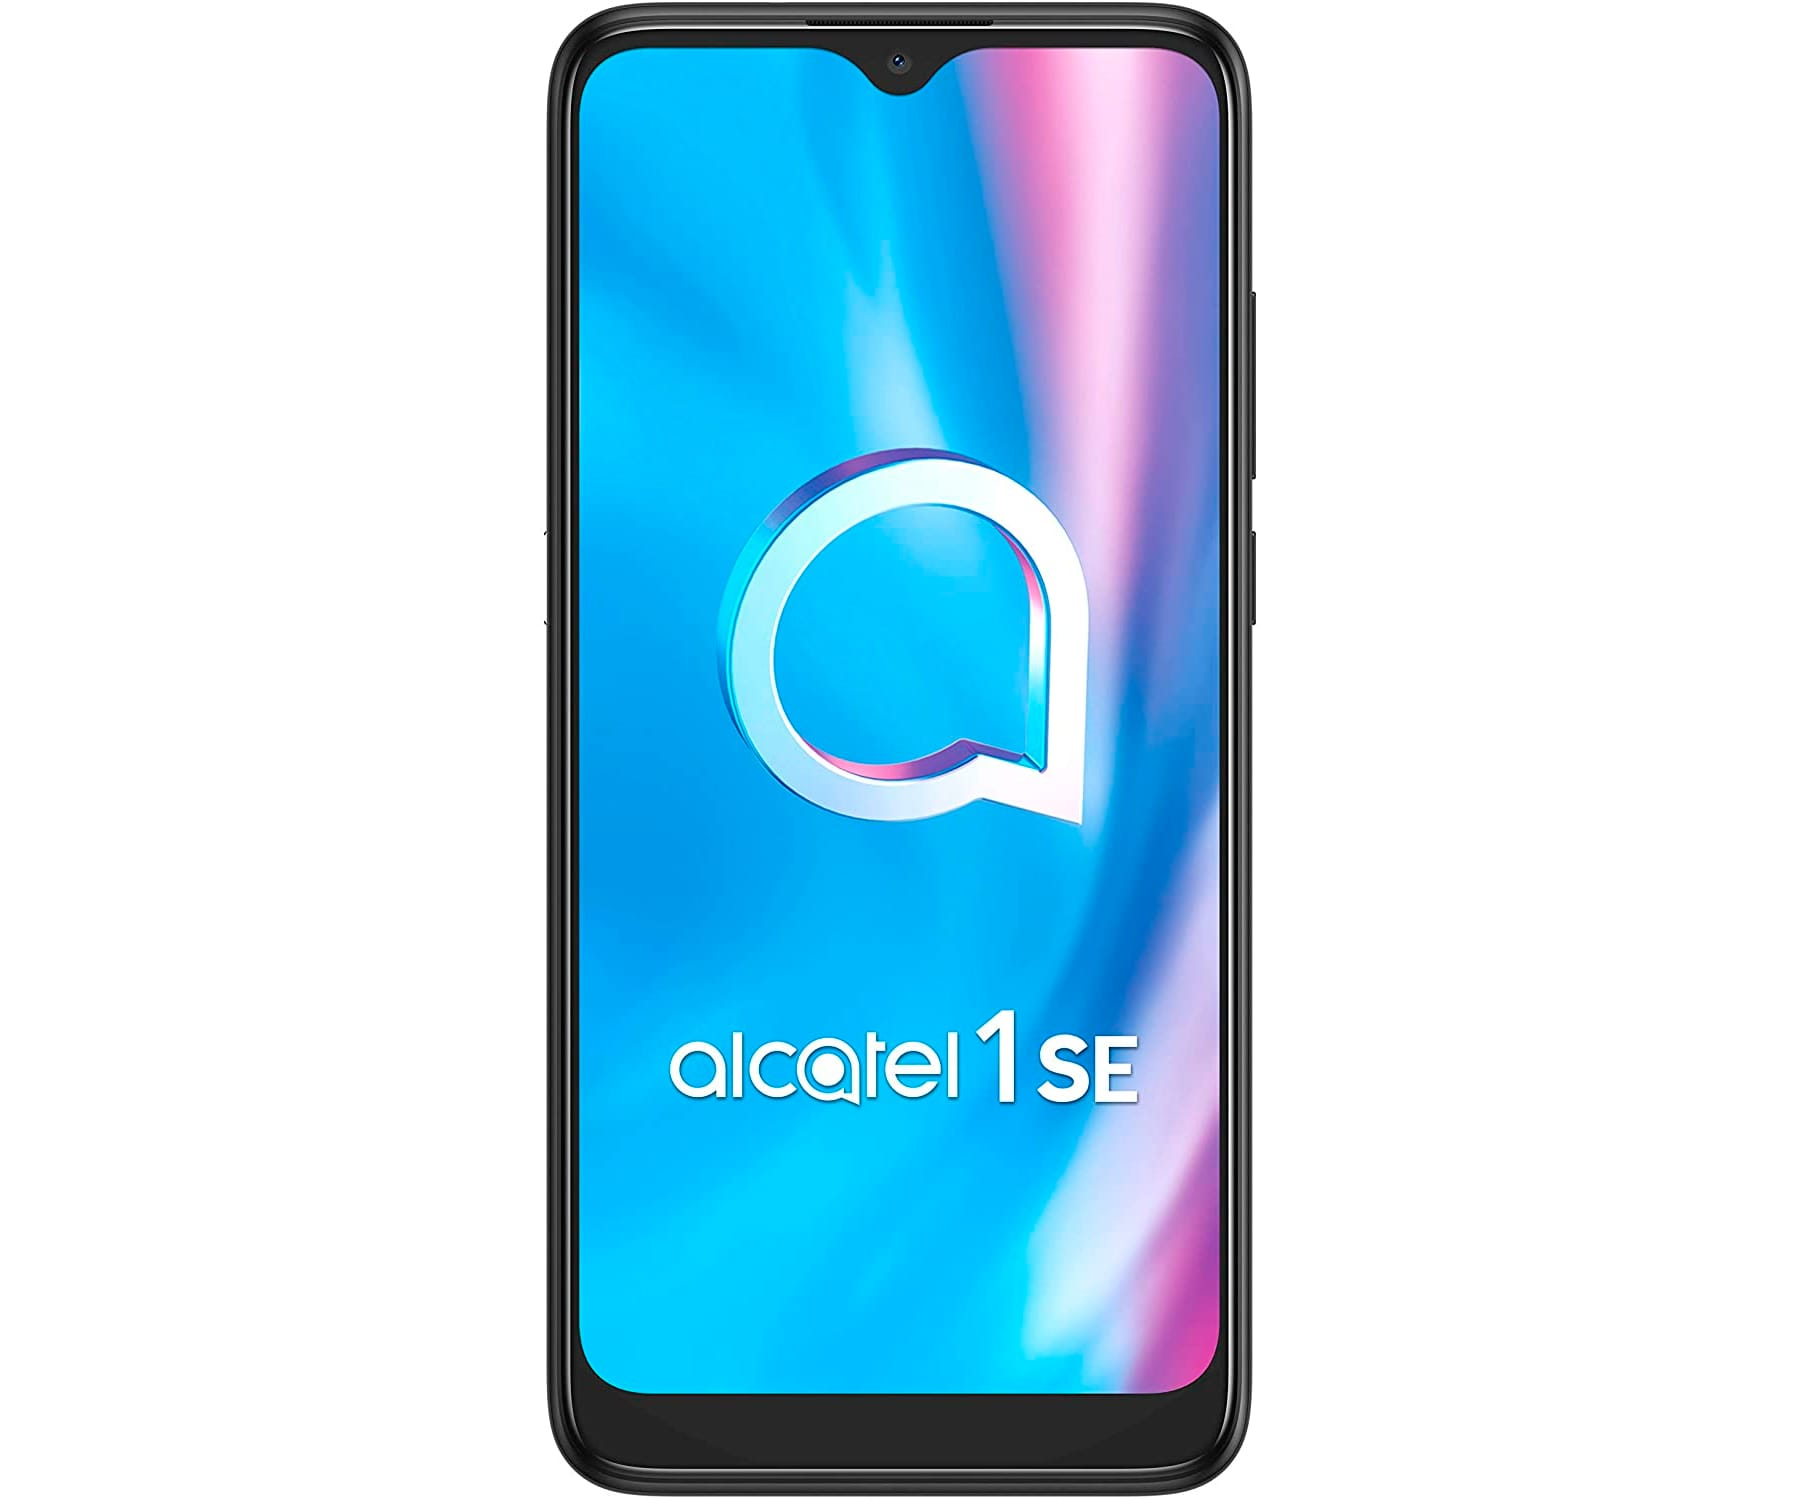 ALCATEL 1SE 5030D GRIS MÓVIL 4G DUAL SIM 6.22'' IPS HD+ OCTACORE 32GB 2GB RAM TRICAM 13MP SELFIES 5MP